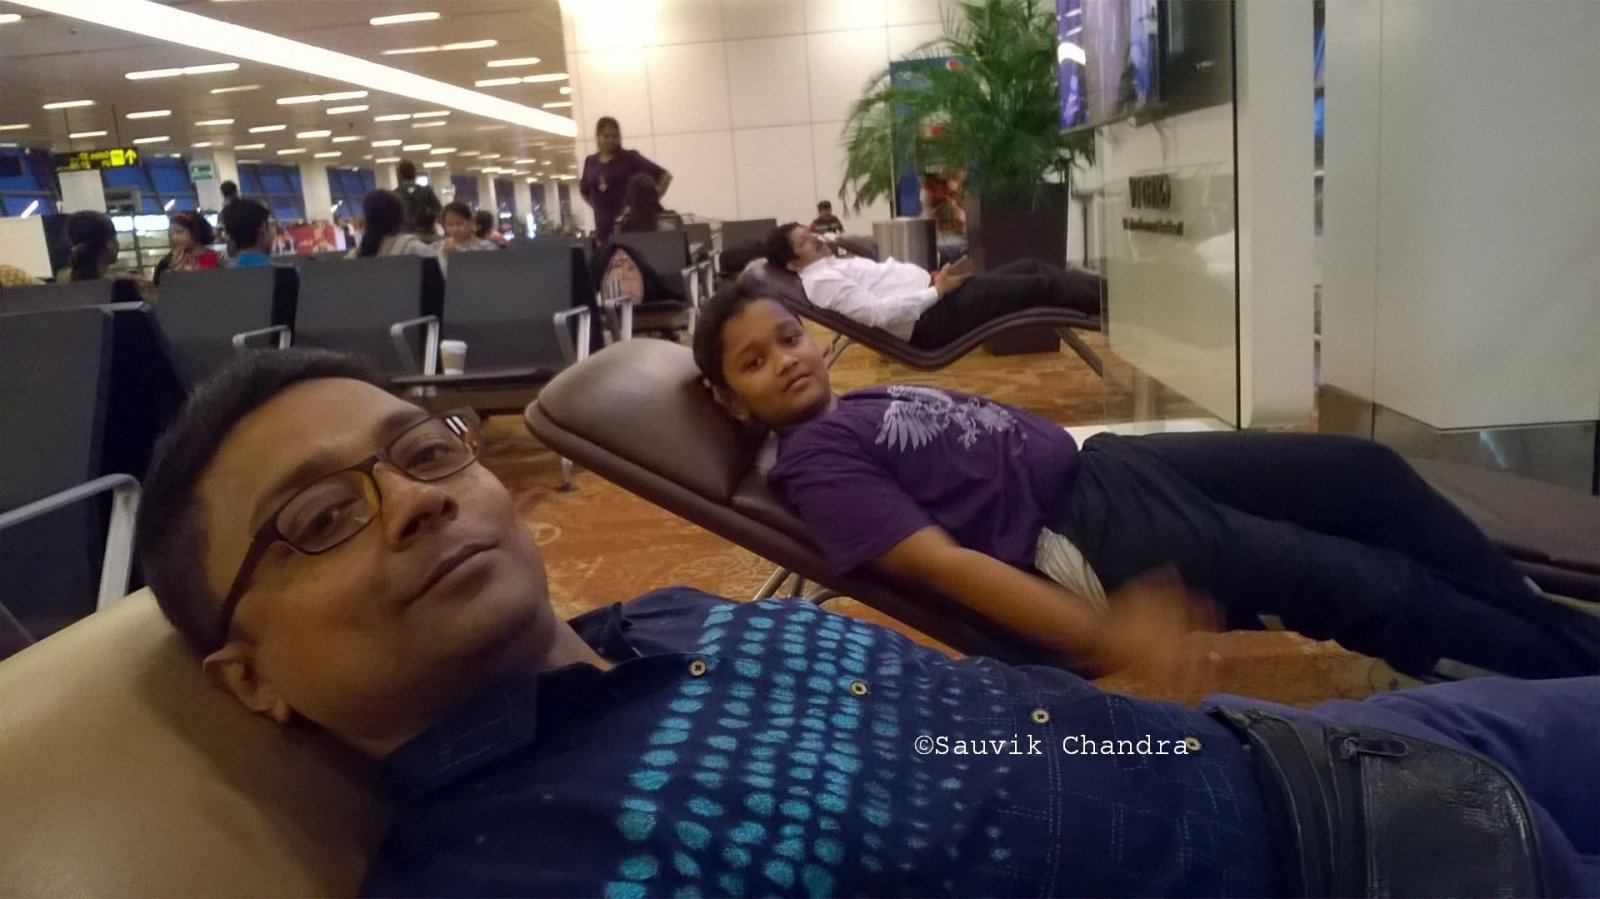 18 Delhi Airport_001_April 2018_edited.jpg